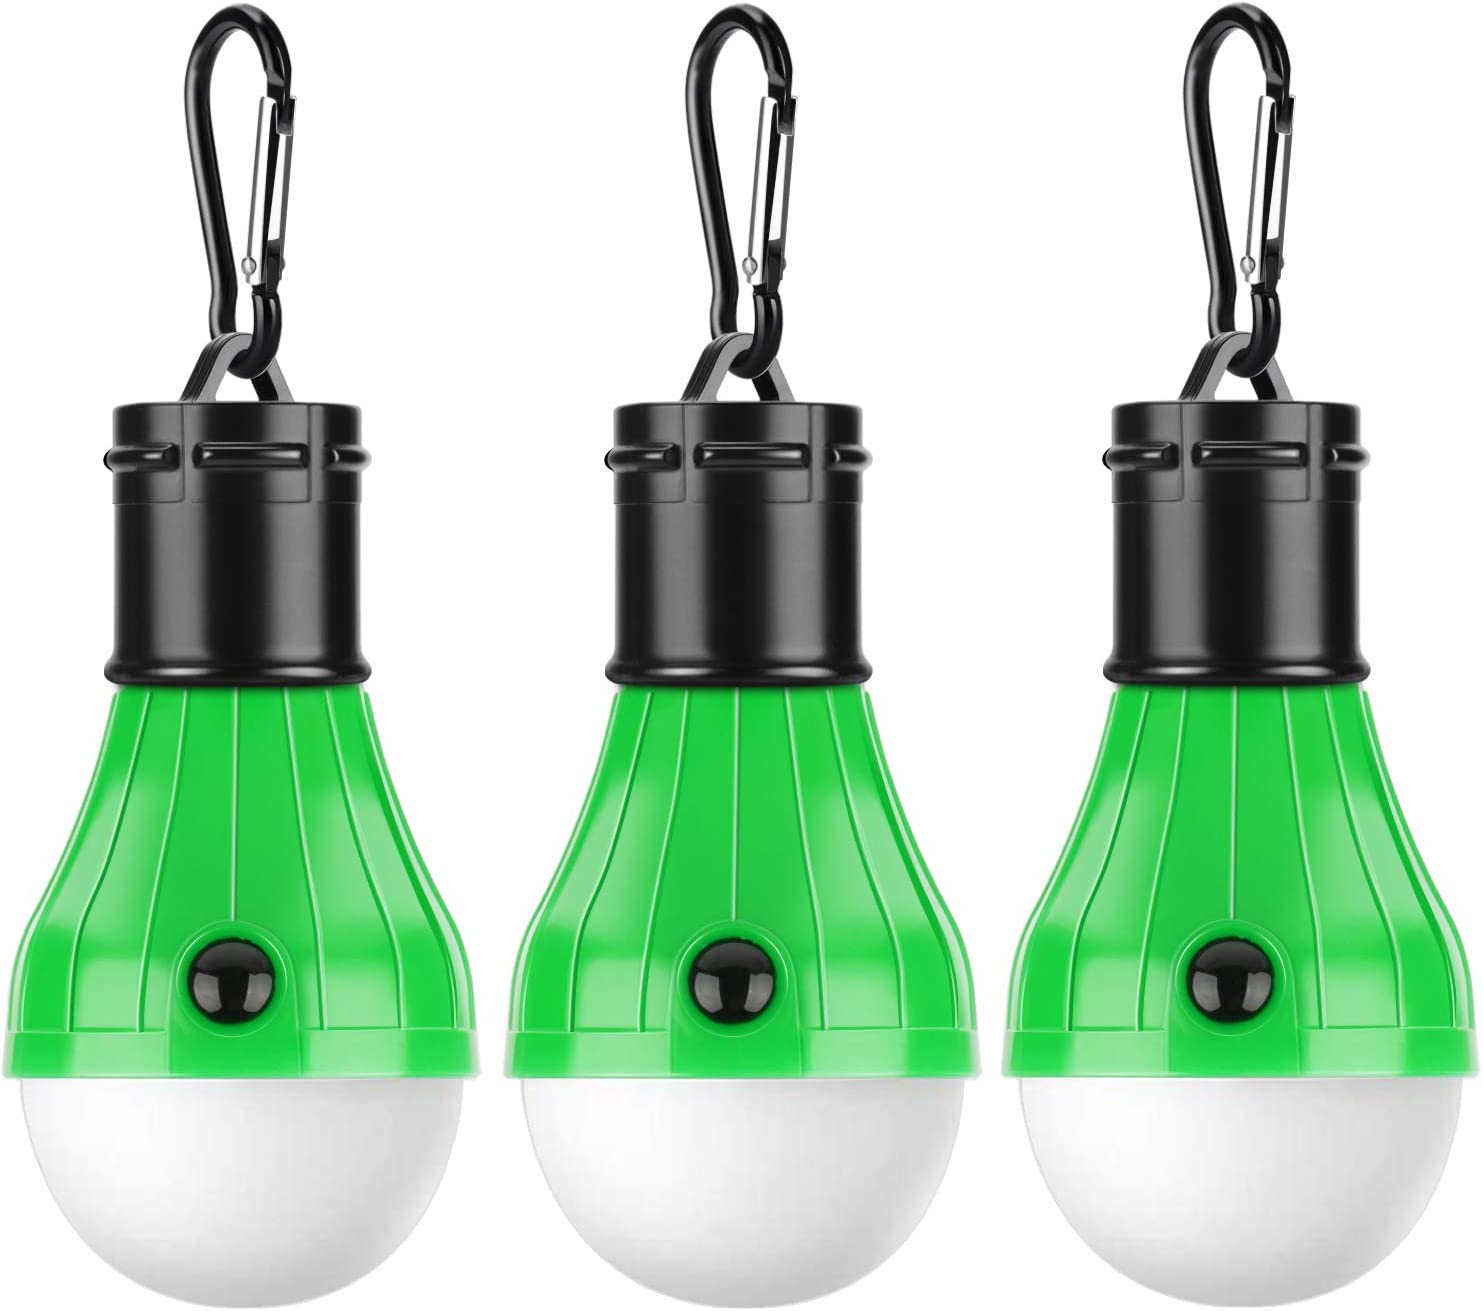 PEMOTech [3 Pack] Tent LED Light, Waterproof Camping Lights for Tents Portable Camping Light Bulb Battery Operated Emergency Light Tent Lamp Lantern